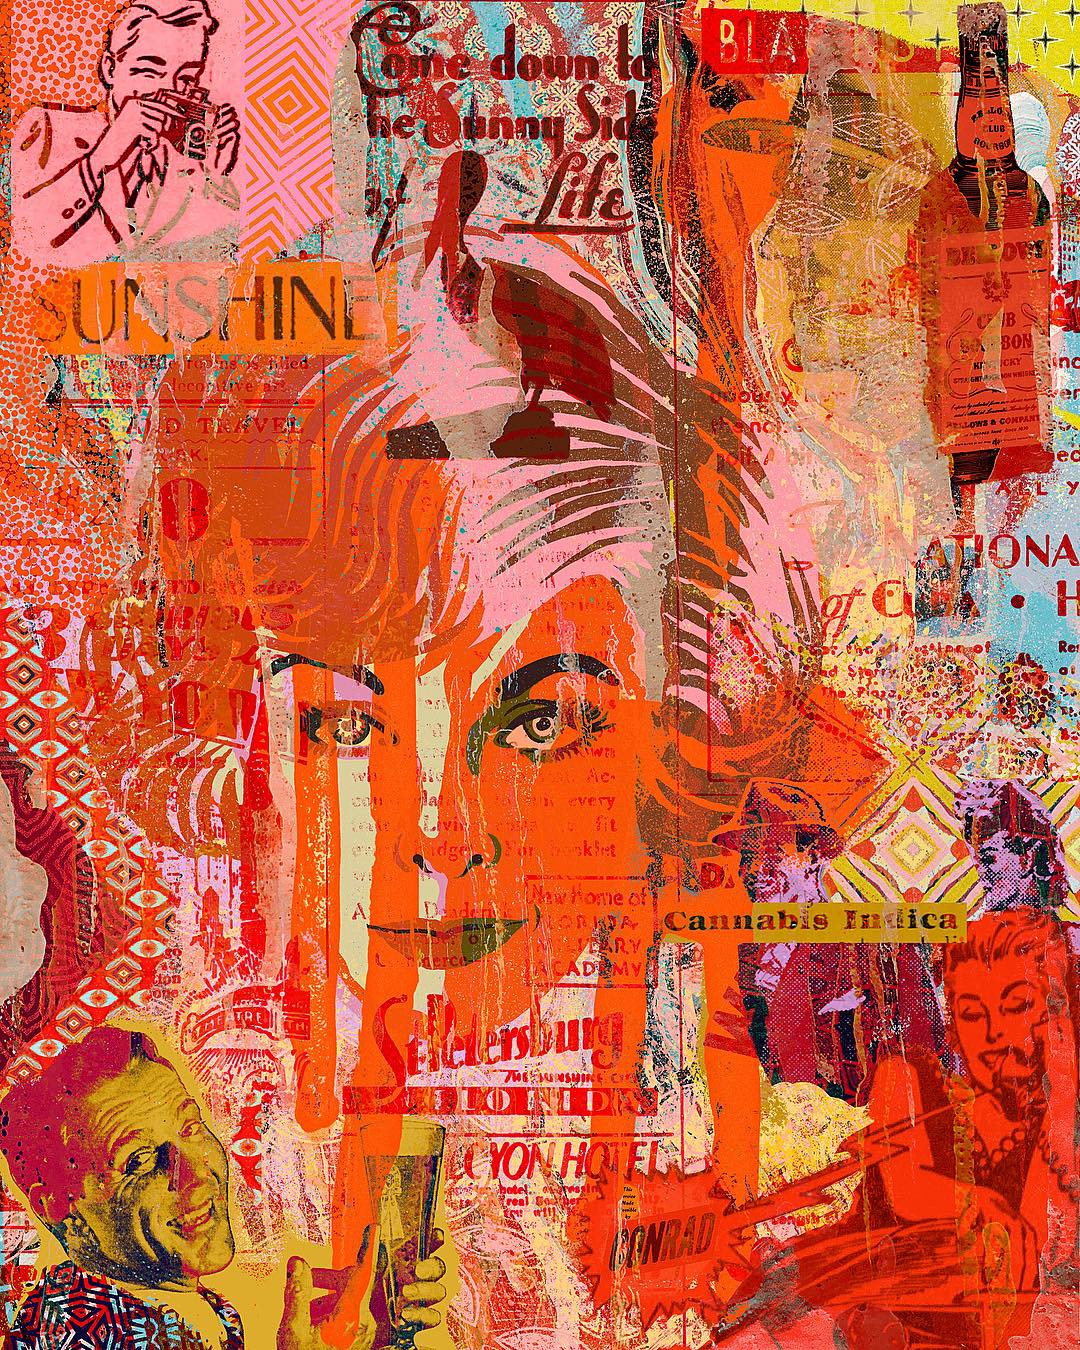 Collage Mixed Media.JPG